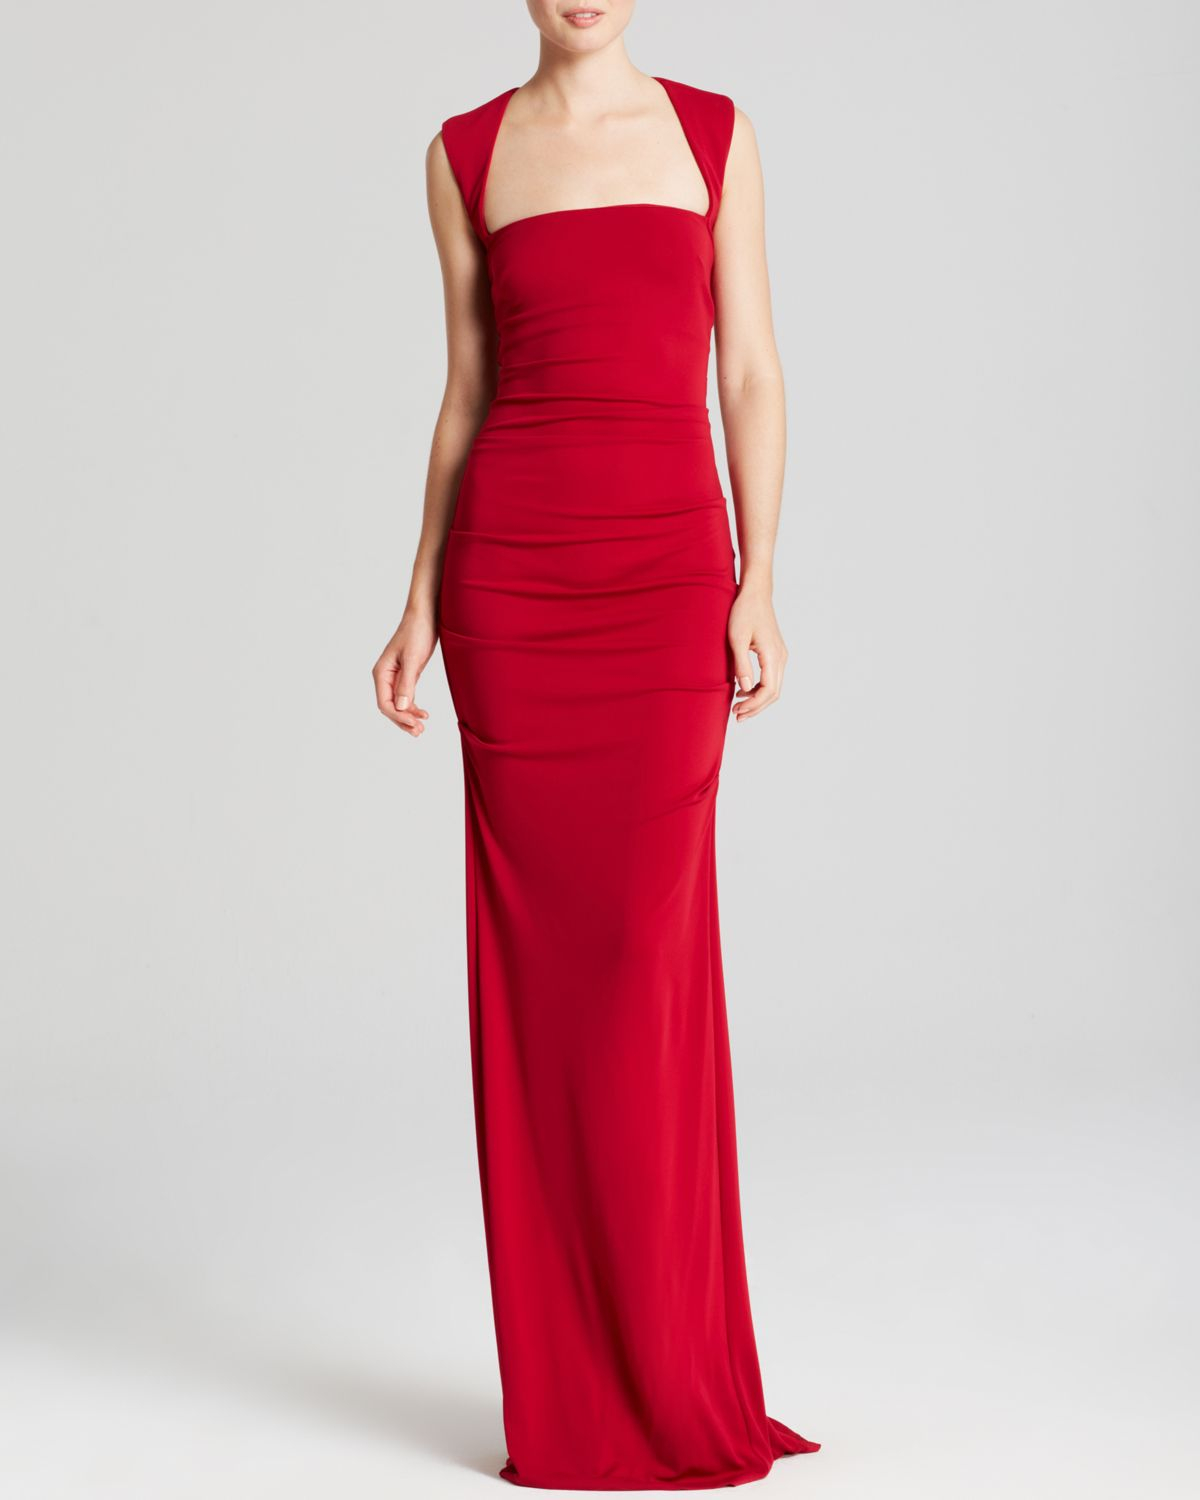 Lyst - Nicole Miller Gown - Sleeveless Stretch in Red